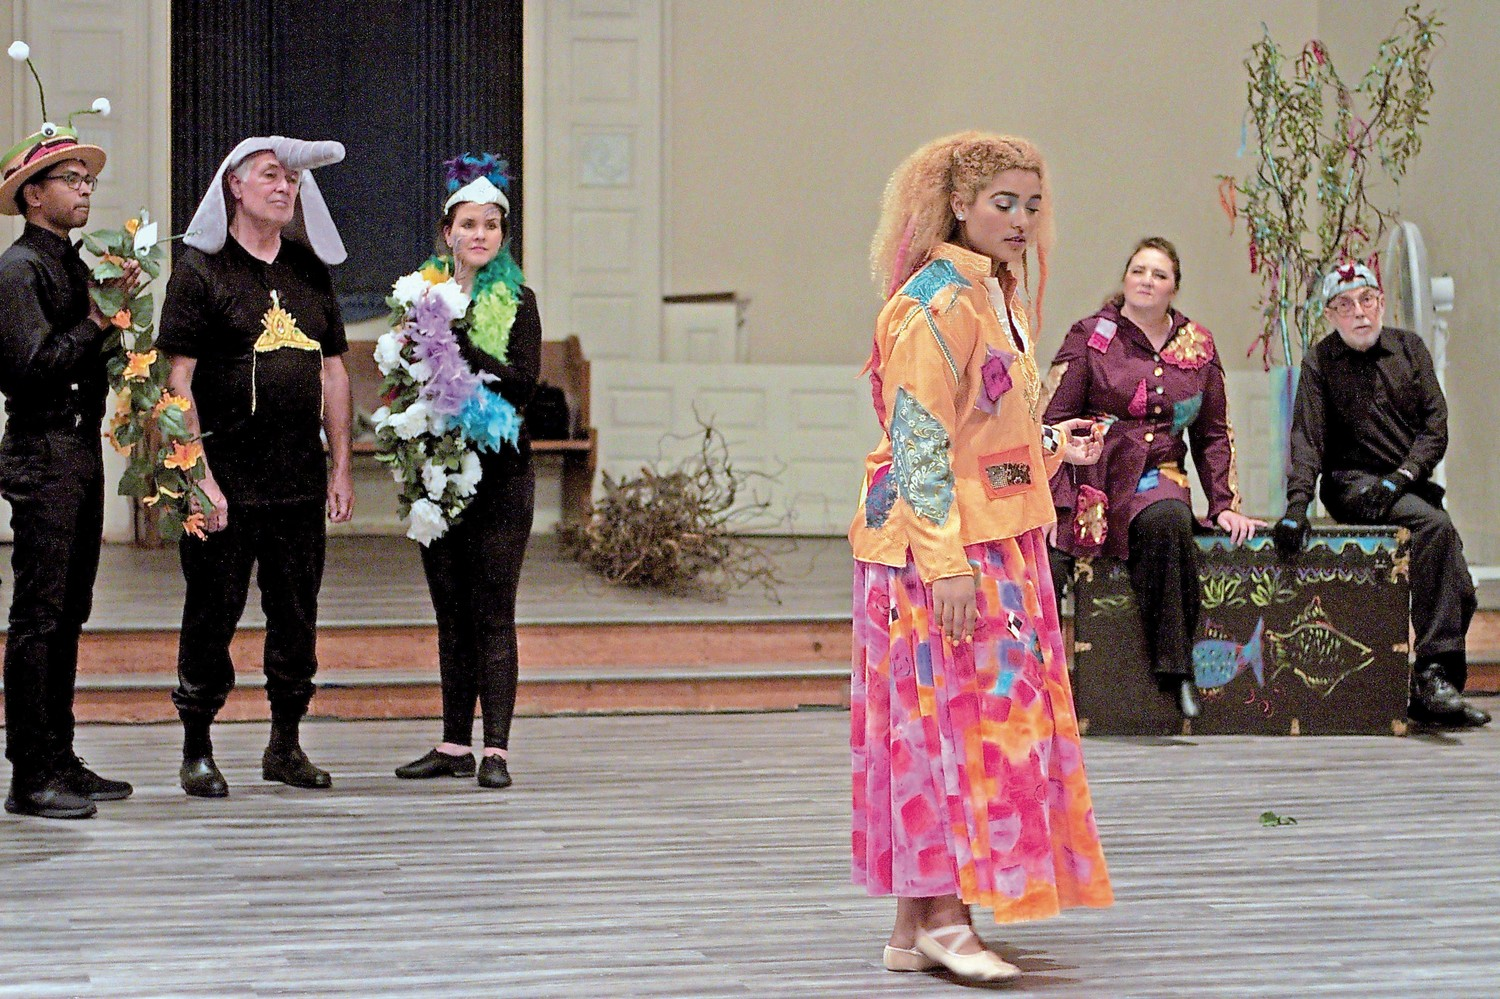 David Gemmy, far left, Mark Tarantino, Livia Hill, Lien Barboza, Deborah Rupy, and John Holly sang and danced rehearsals away in preparation for opening night.